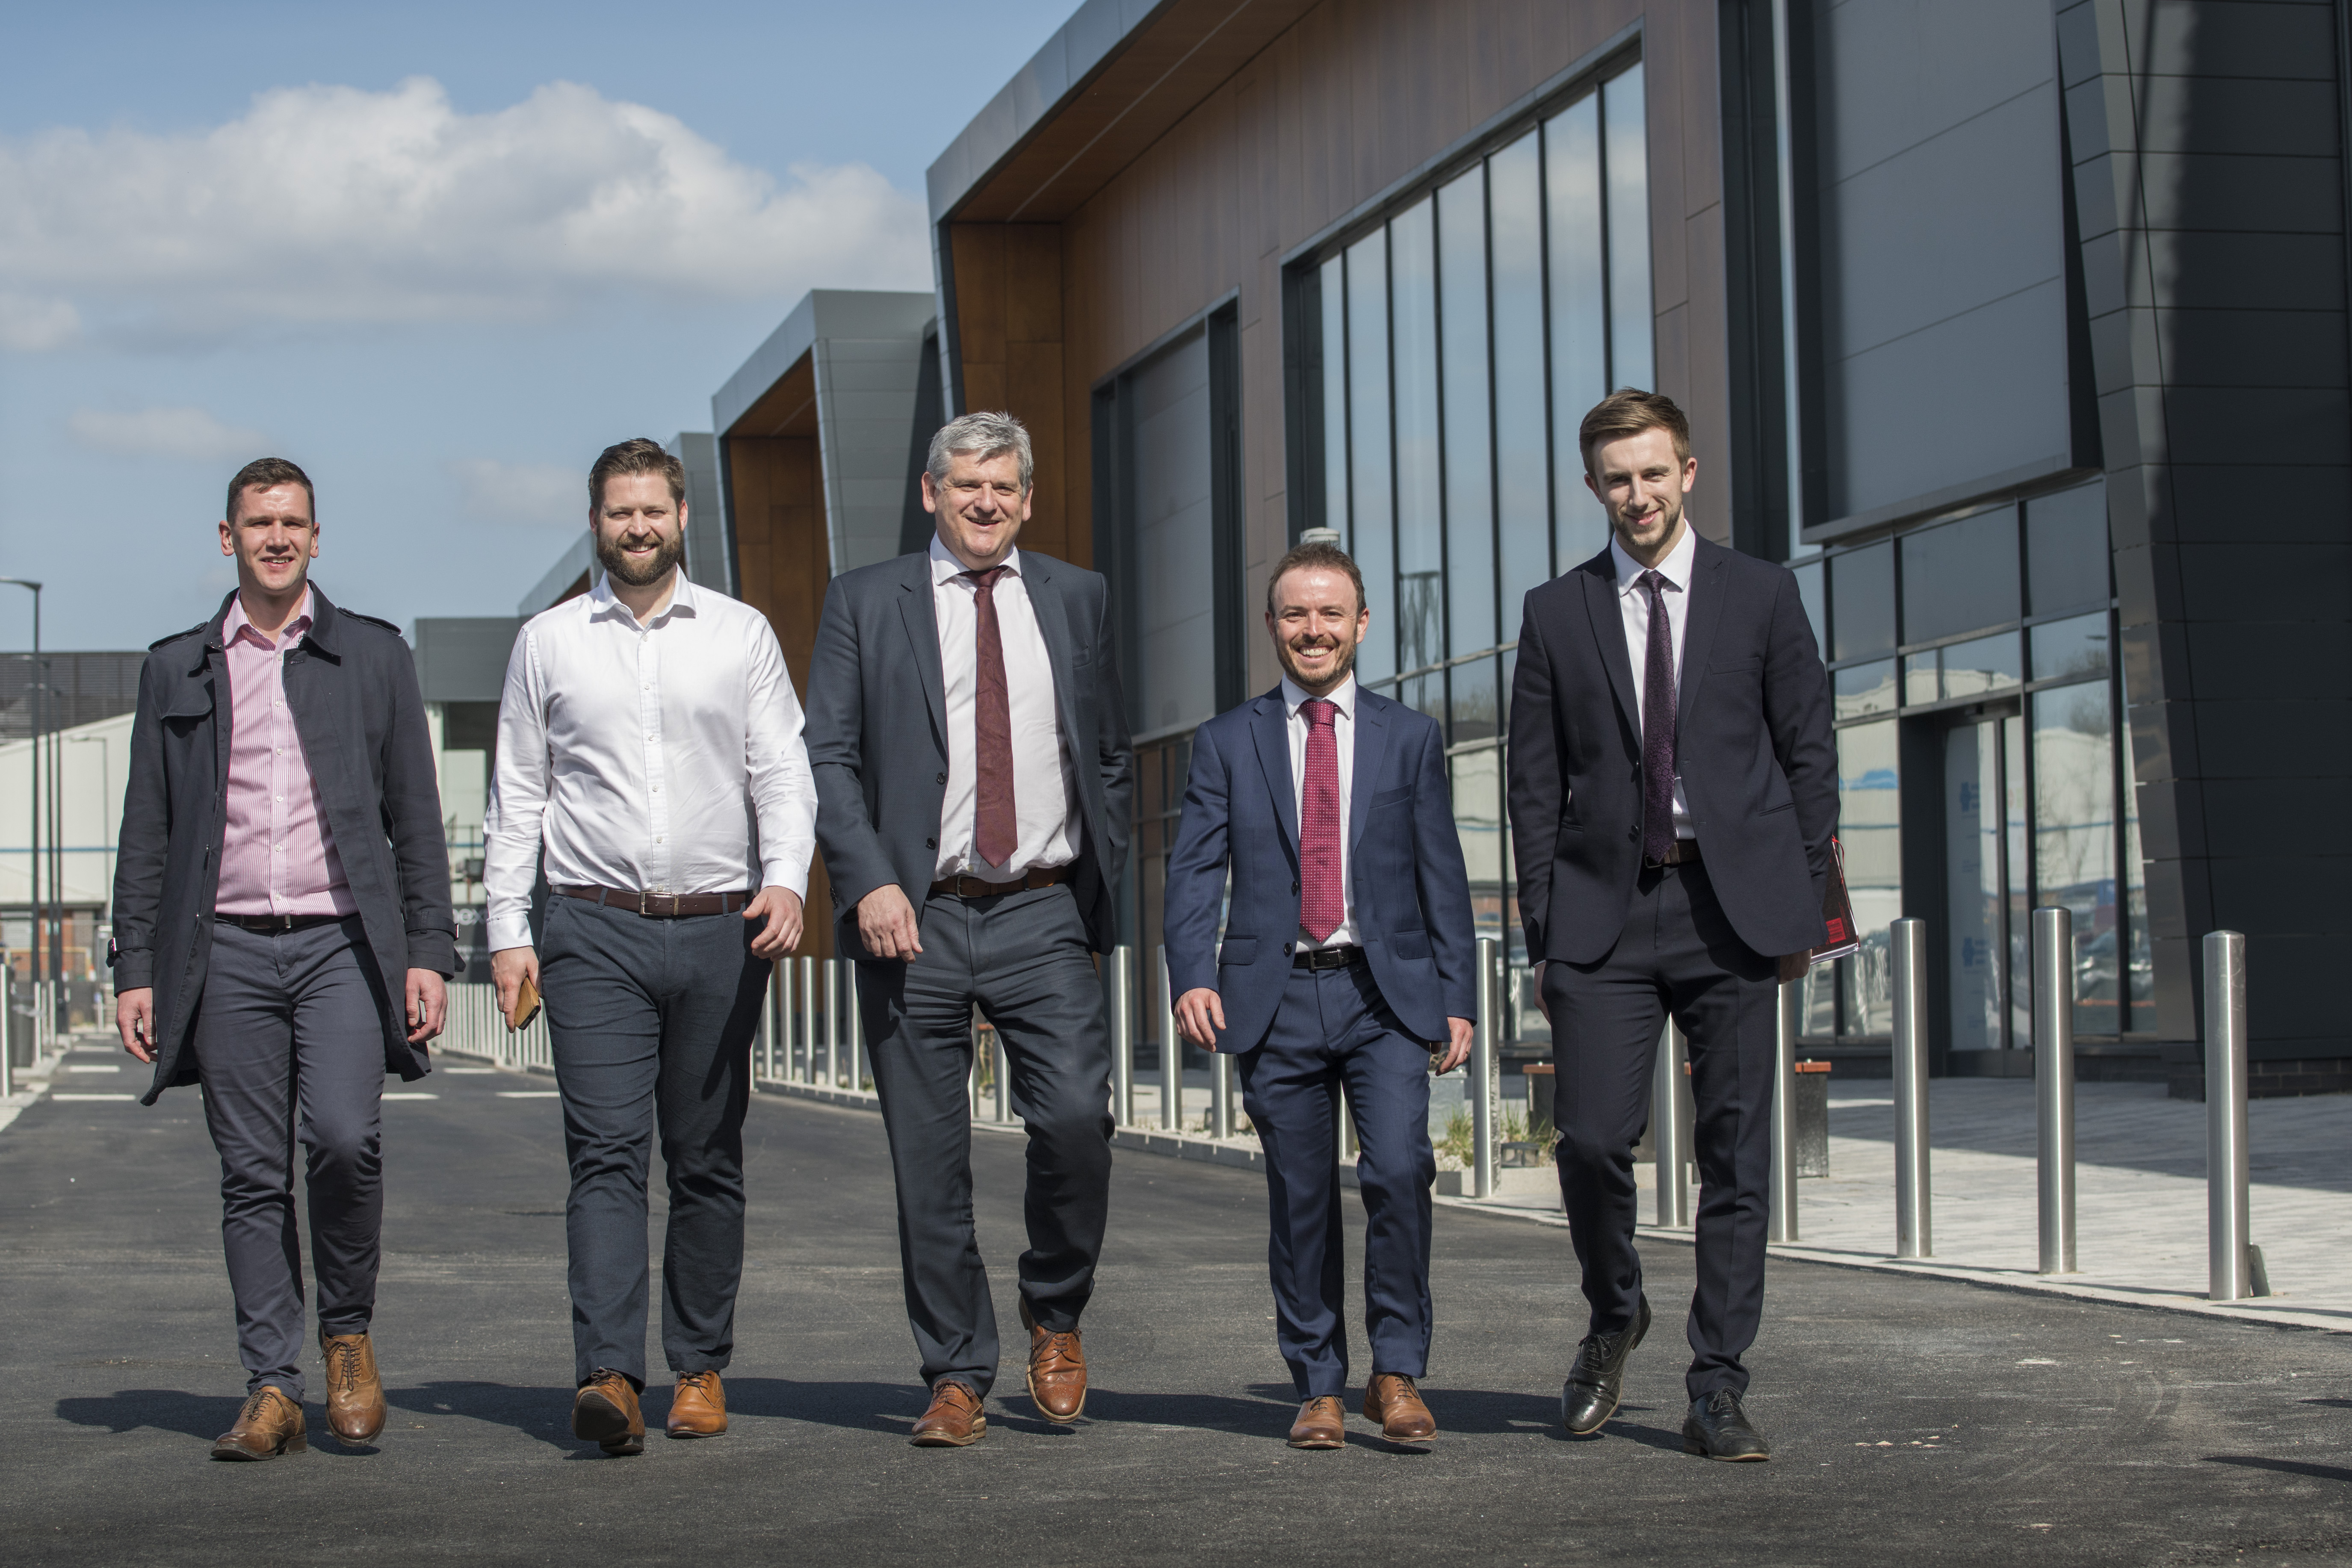 GMI HANDS OVER NEW £35 MILLION RETAIL PARK IN SHEFFIELD FOR OCCUPATION